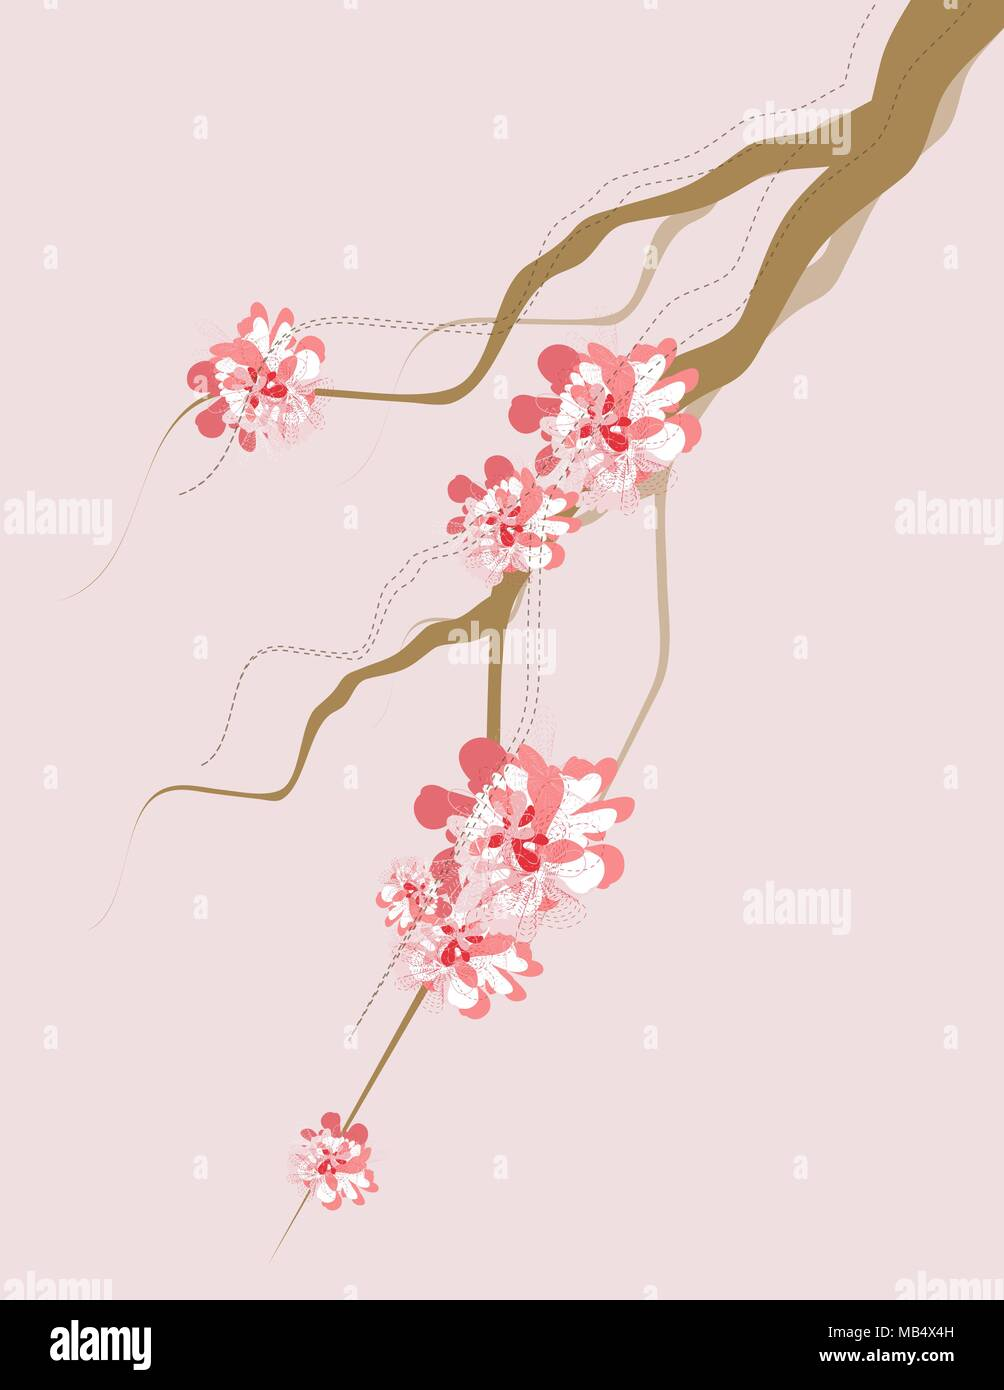 Some tree branches with artistic flair with some blossoms. All swatches are global, makes for easy color swapping to whatever you would like. All obje - Stock Vector